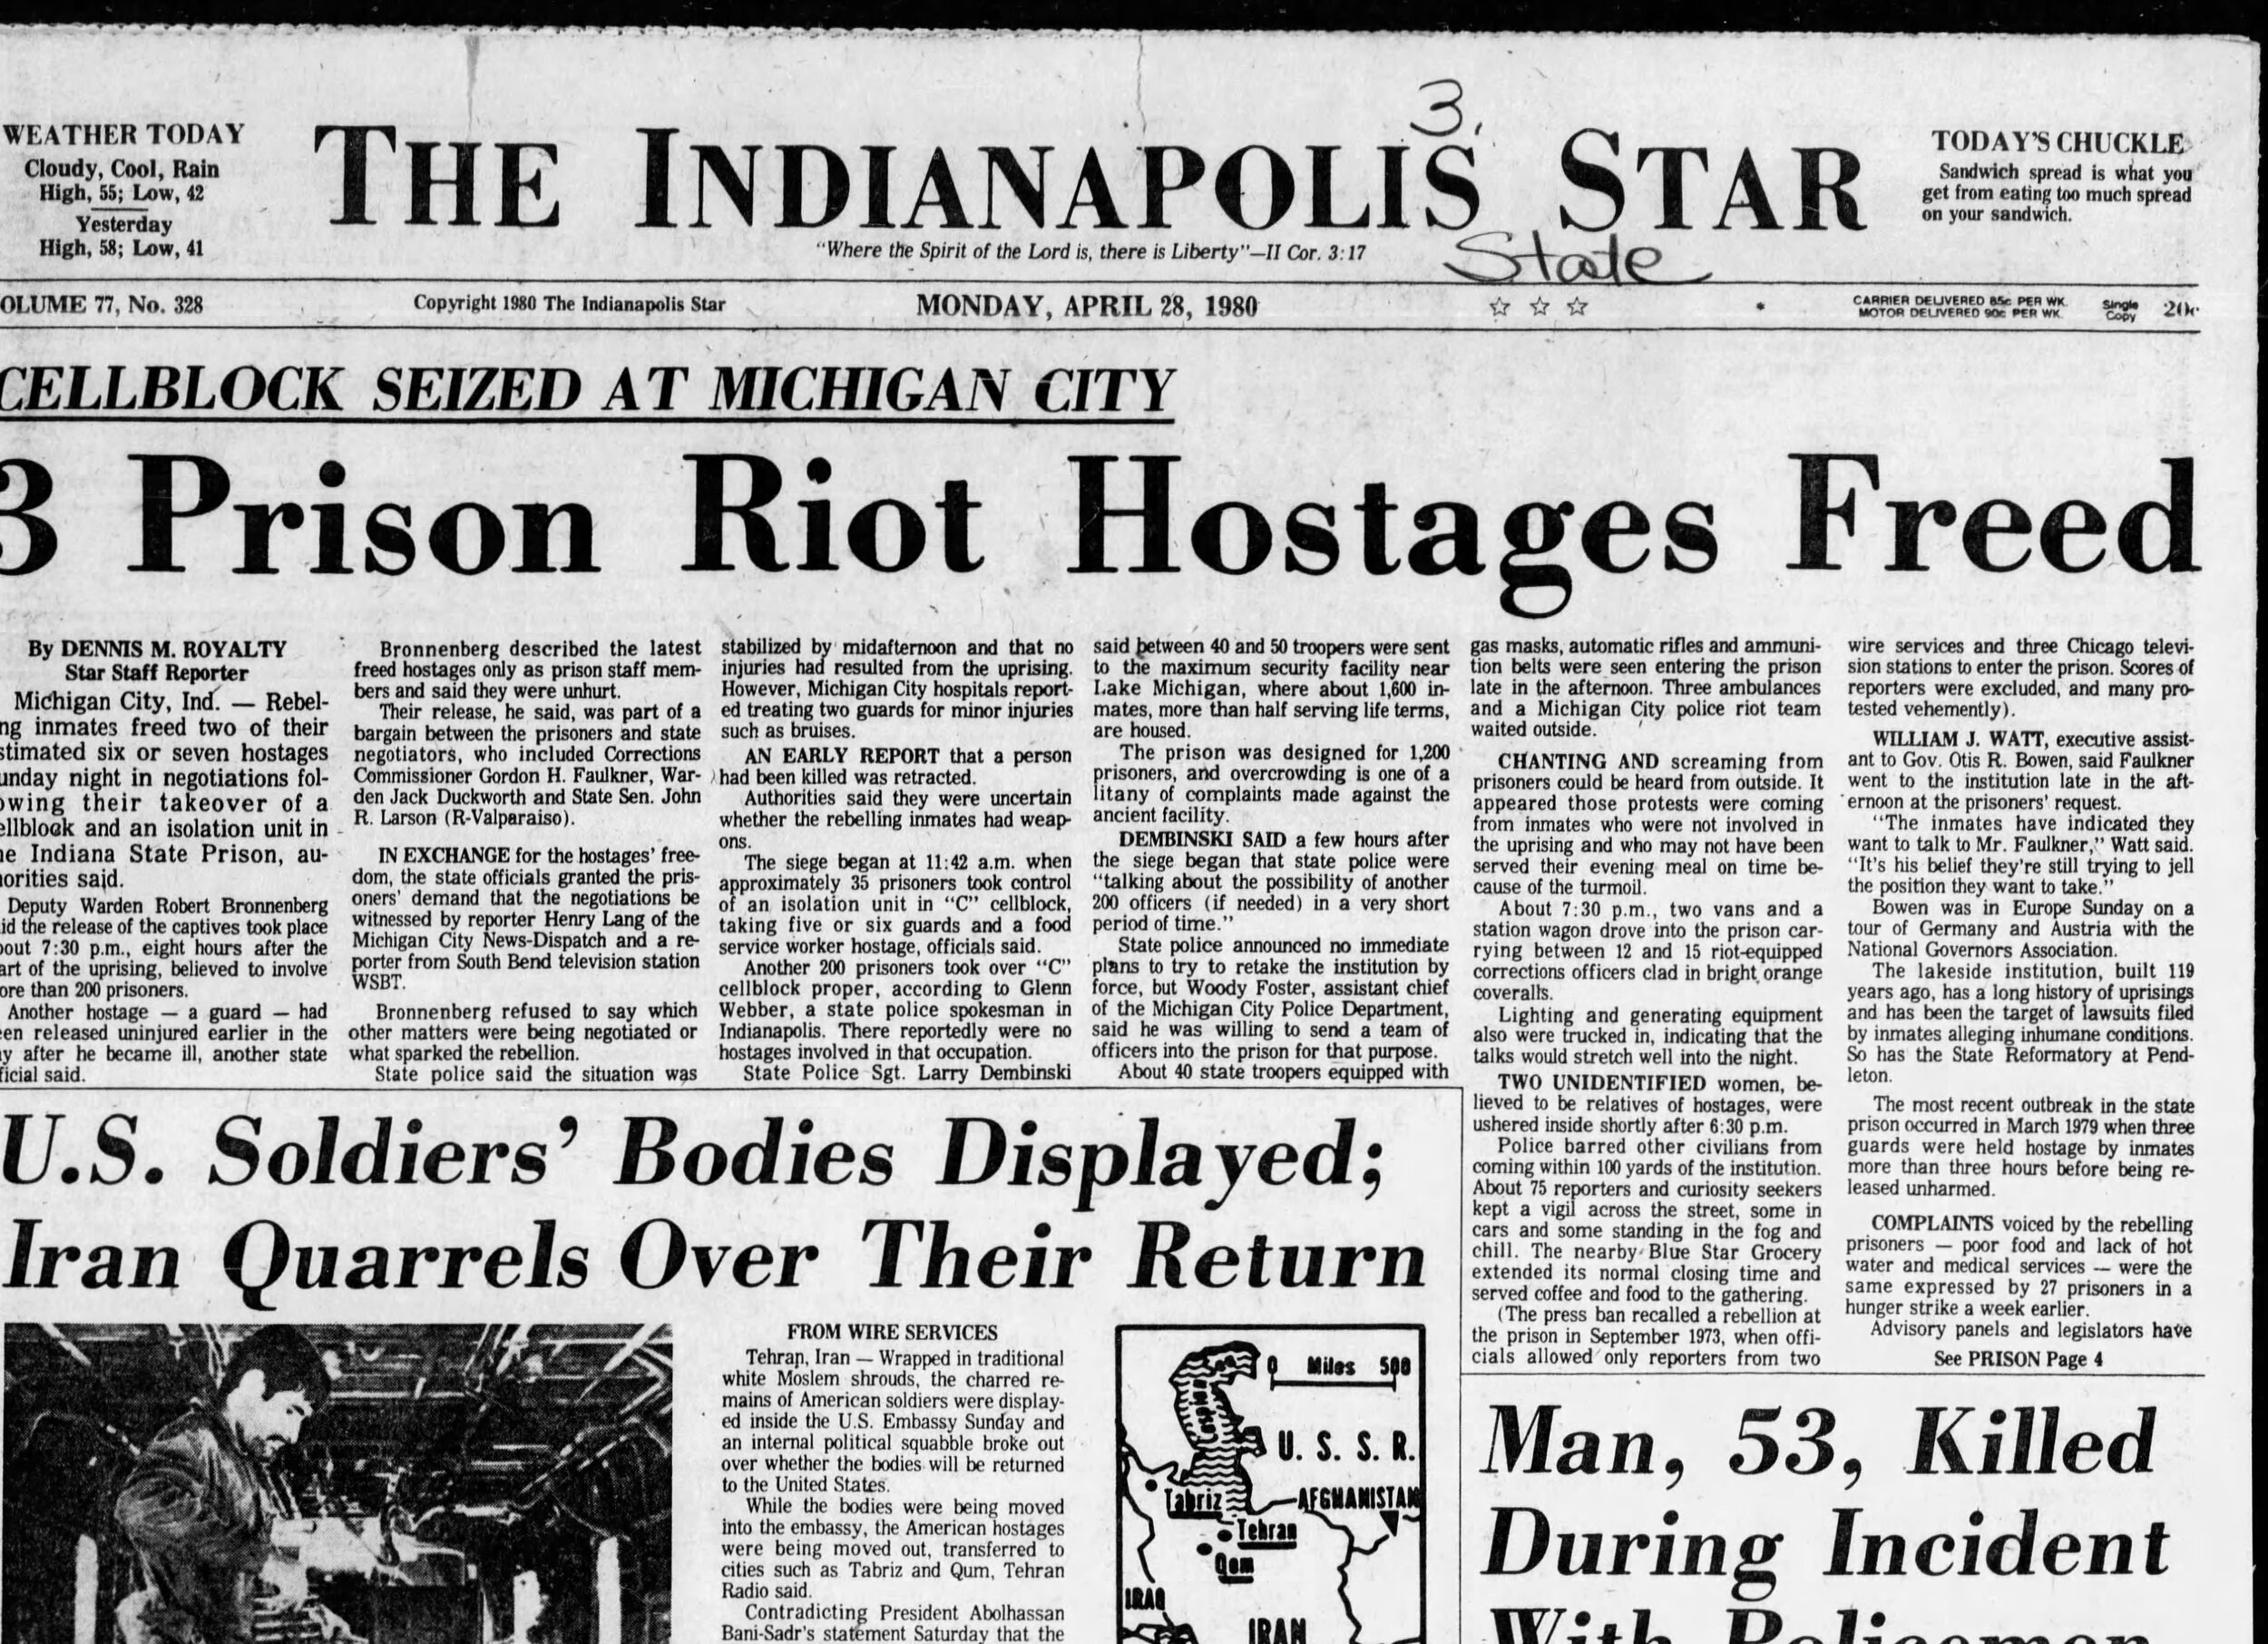 The_Indianapolis_Star_Mon__Apr_28__1980_1.jpg